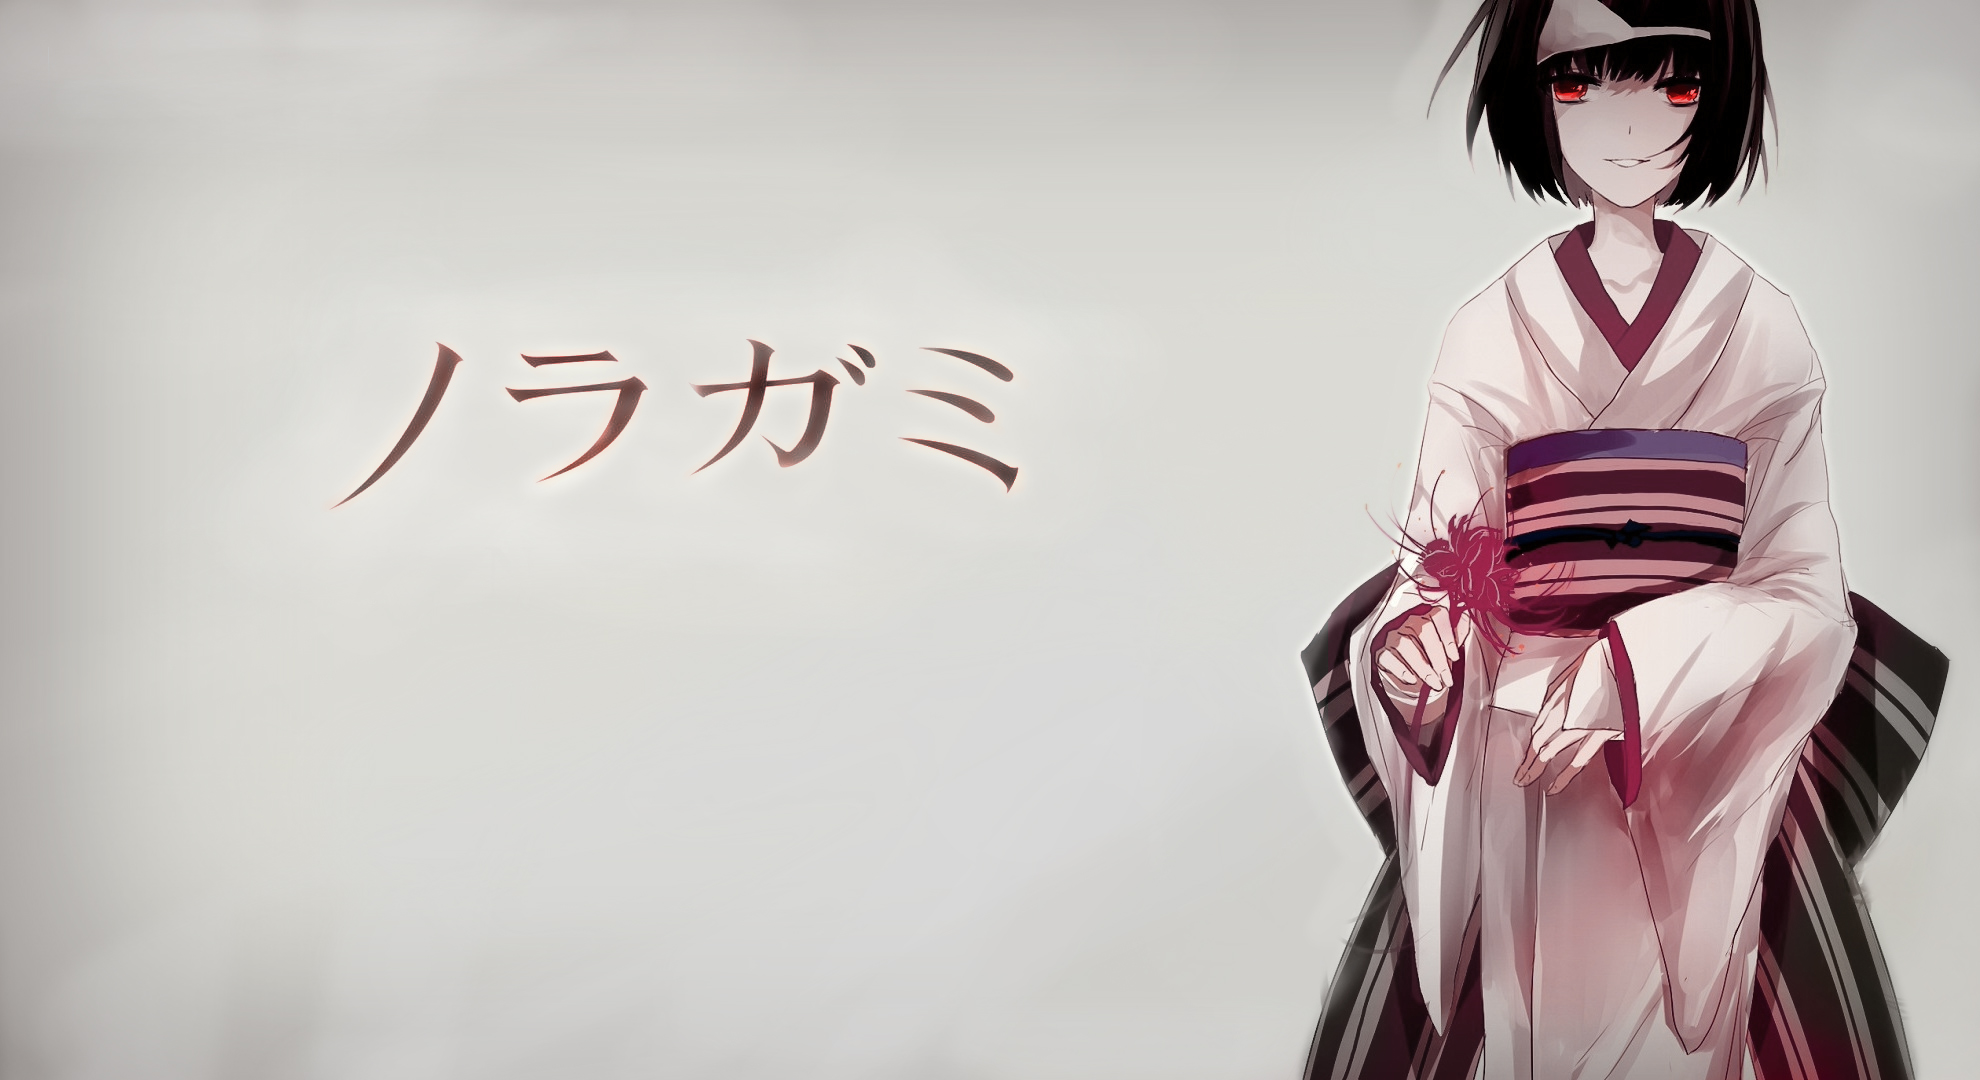 cute wallpaper for computer noragami - photo #21